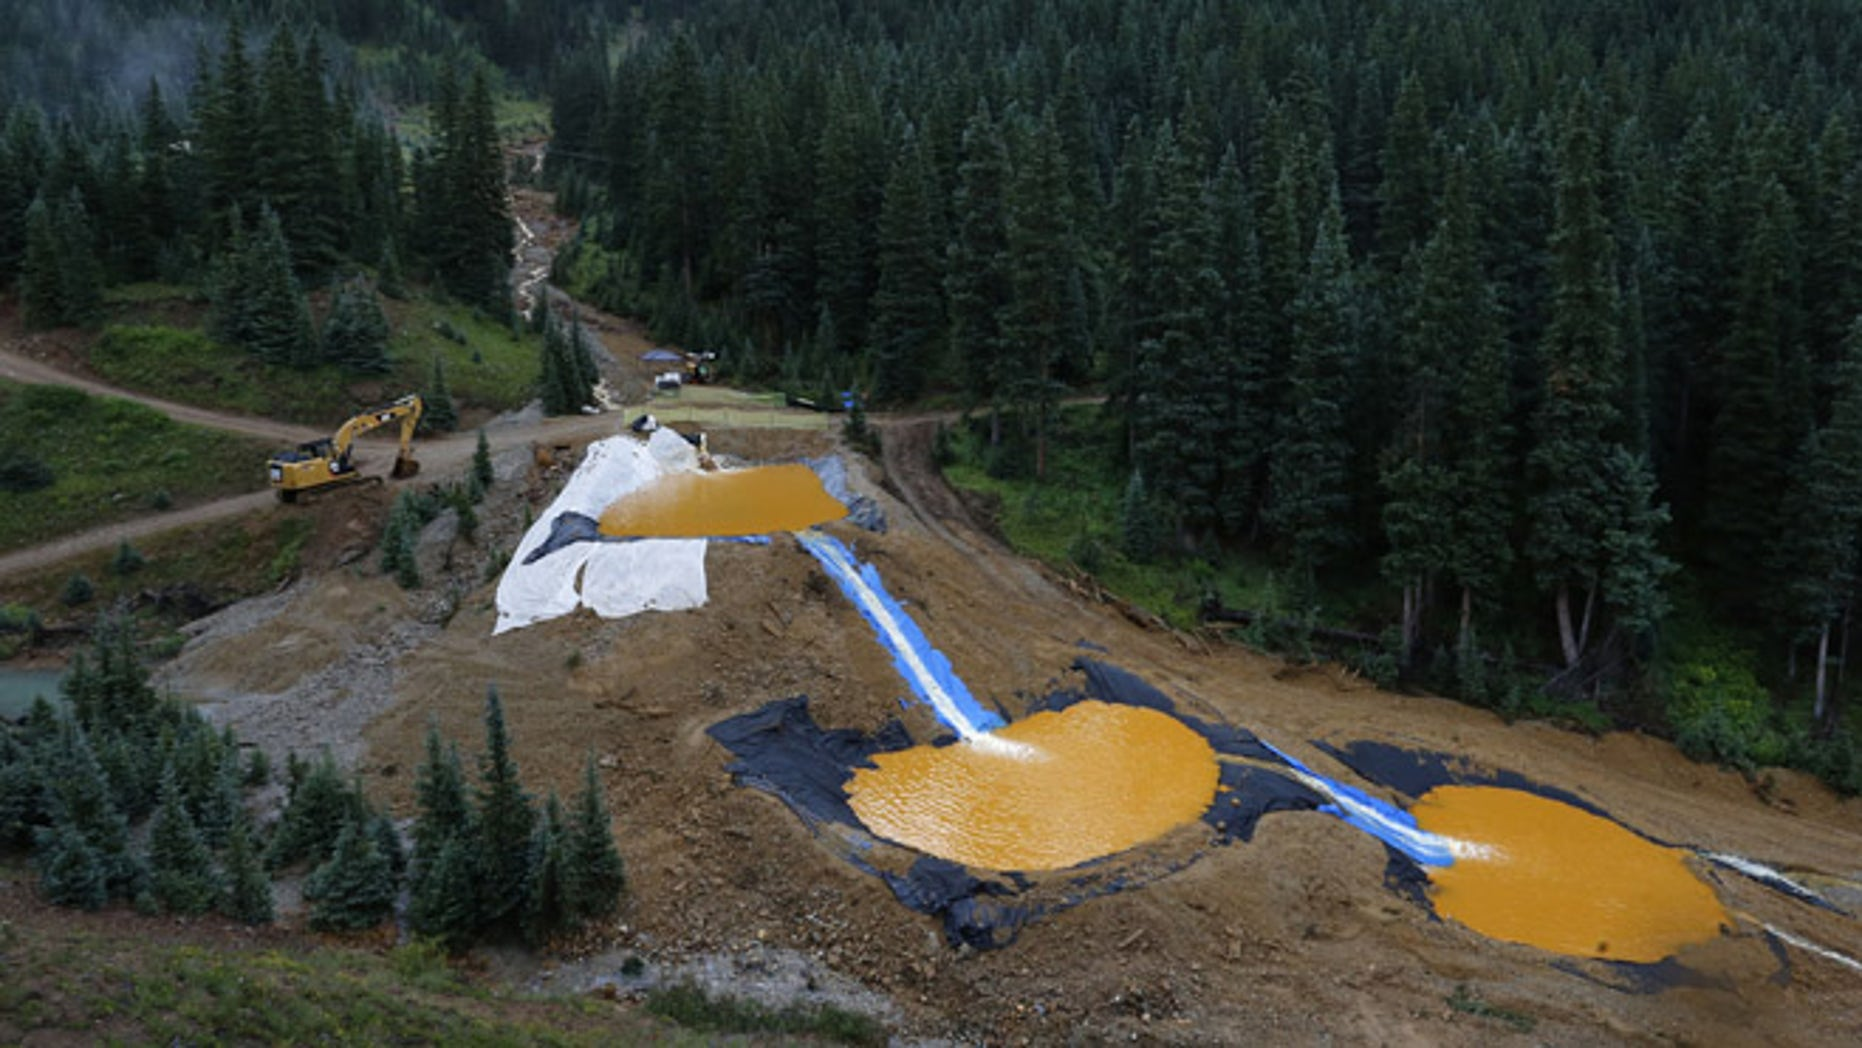 Aug. 12, 2015: Water flows through a series of retention ponds built to contain and filter out heavy metals and chemicals from the Gold King mine chemical accident, in the spillway about 1/4 mile downstream from the mine, outside Silverton, Colo. (AP)